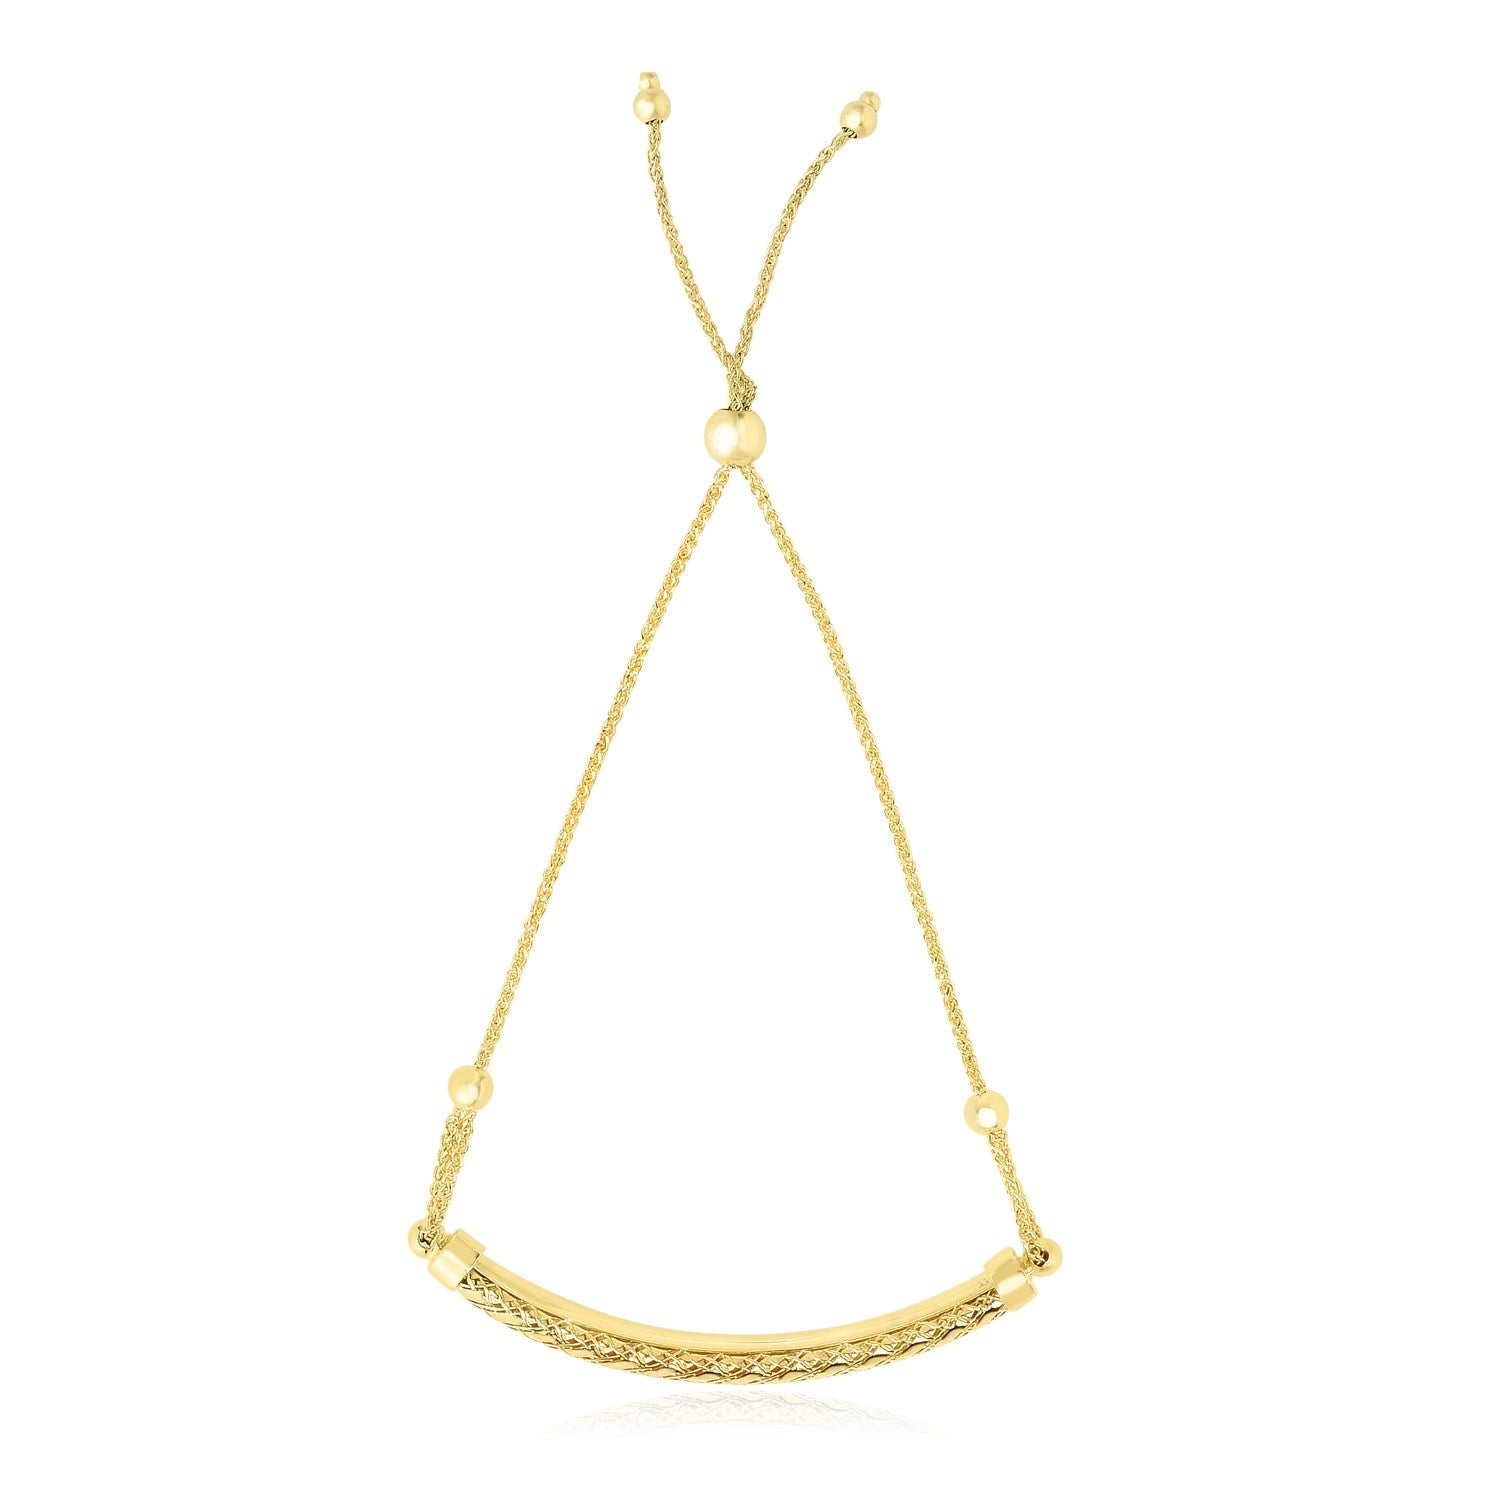 14K Yellow Gold Curved Textured Bar Adjustable Lariat Bracelet